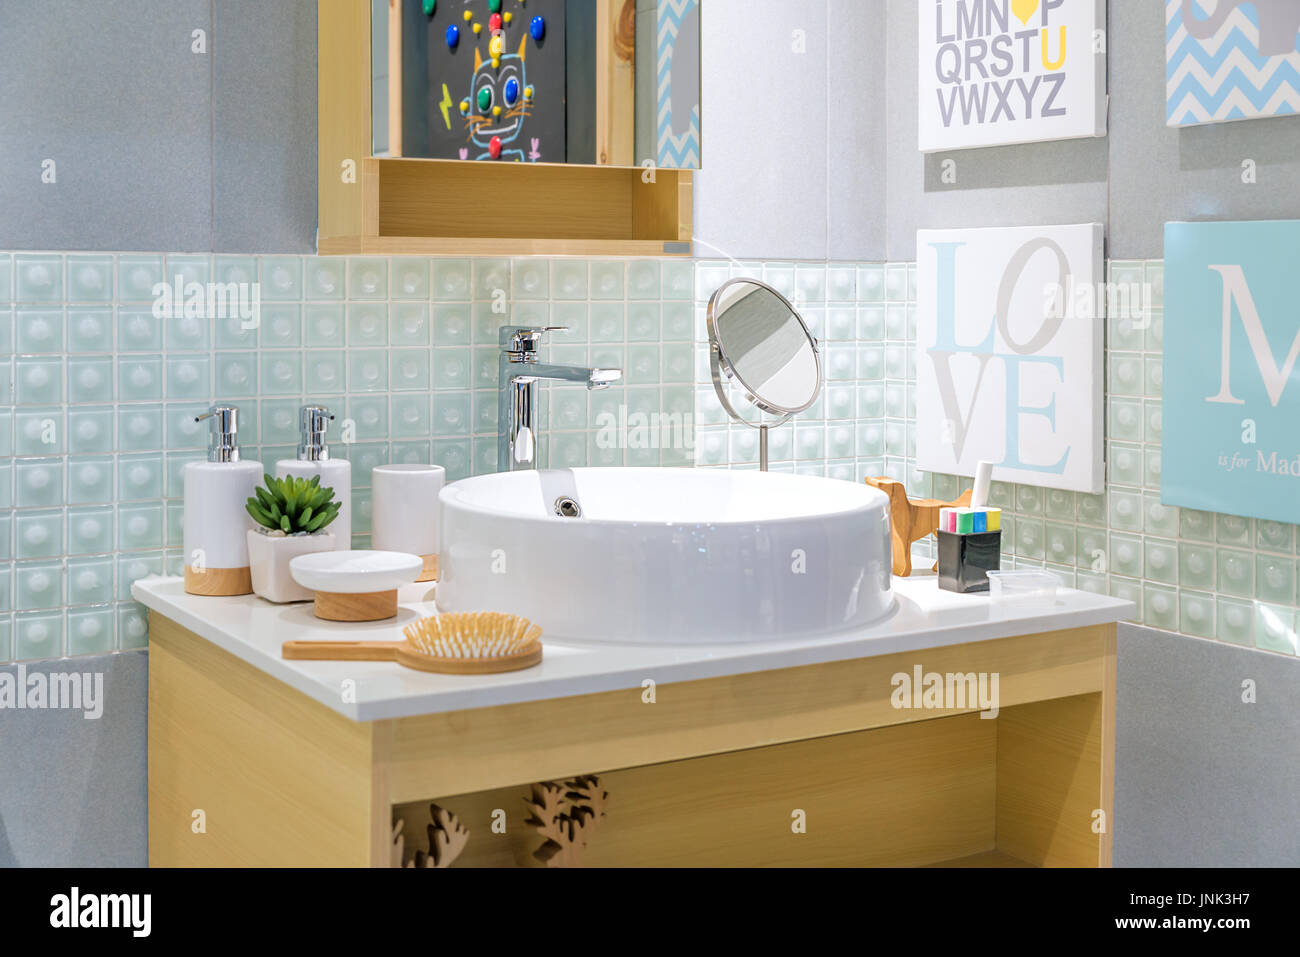 Interior of bathroom with sink basin faucet and mirror. Modern design of bathroom. - Stock Image